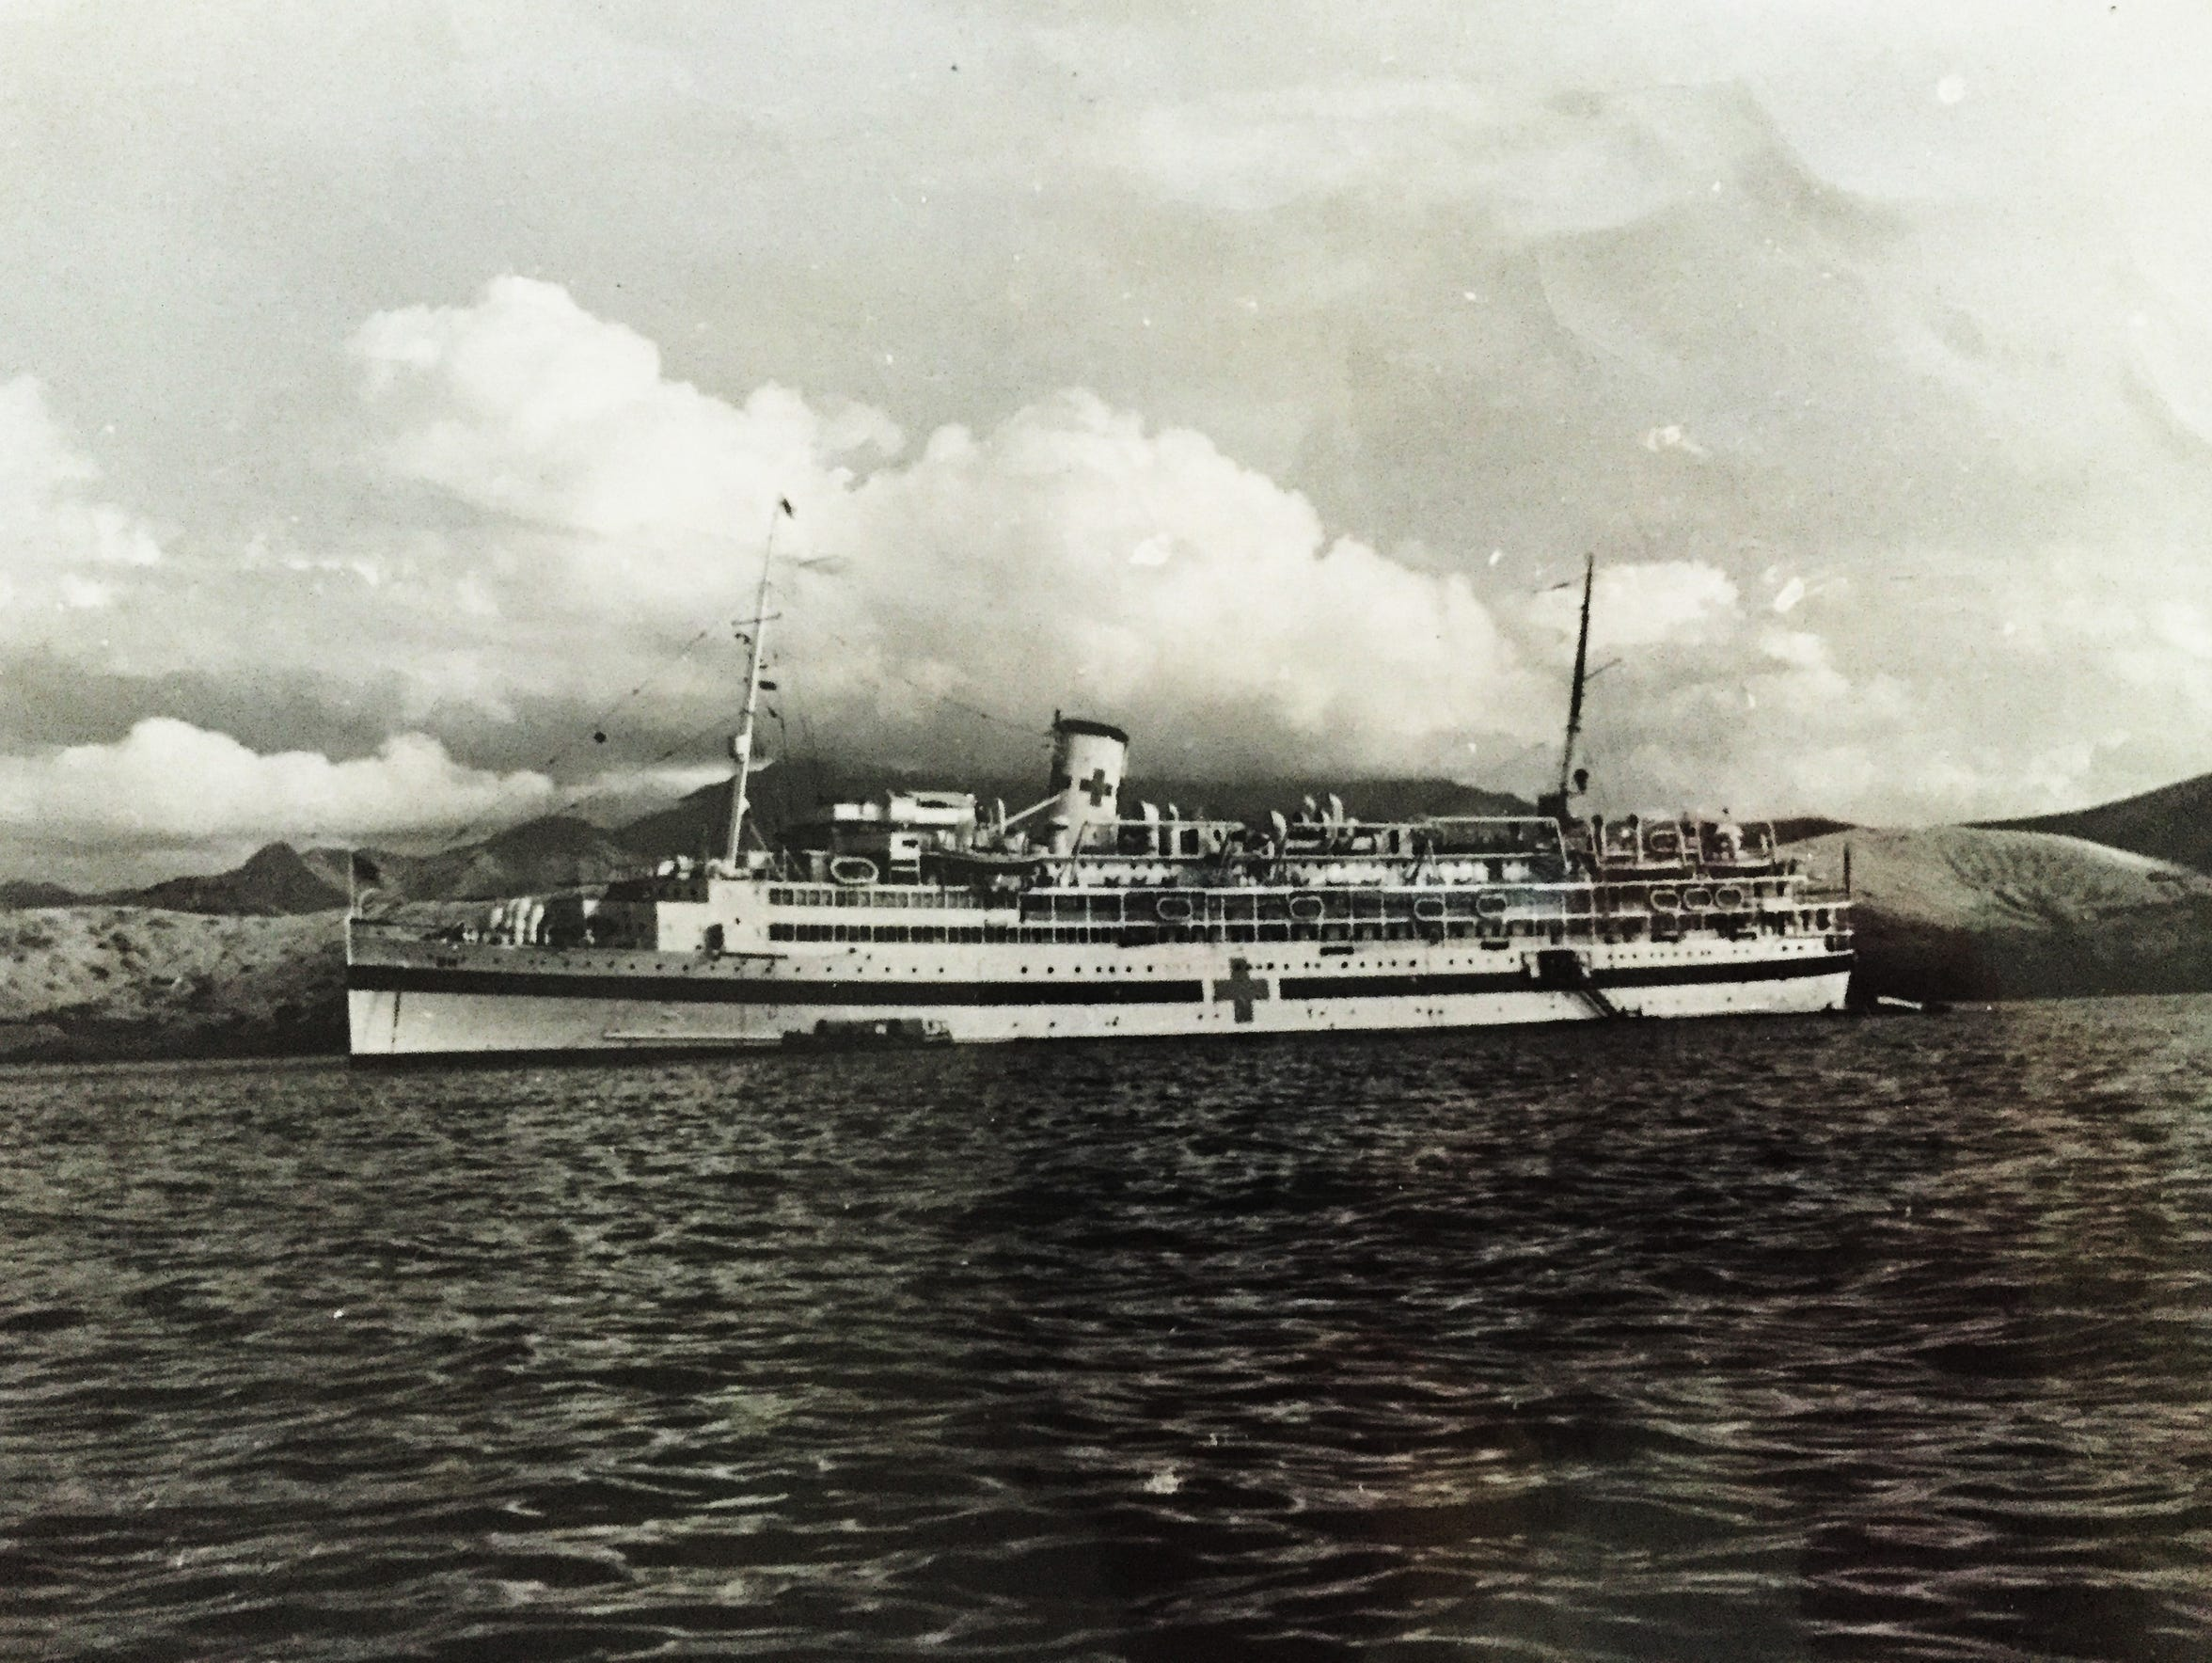 Miller served aboard USS Solace, a ship that transported